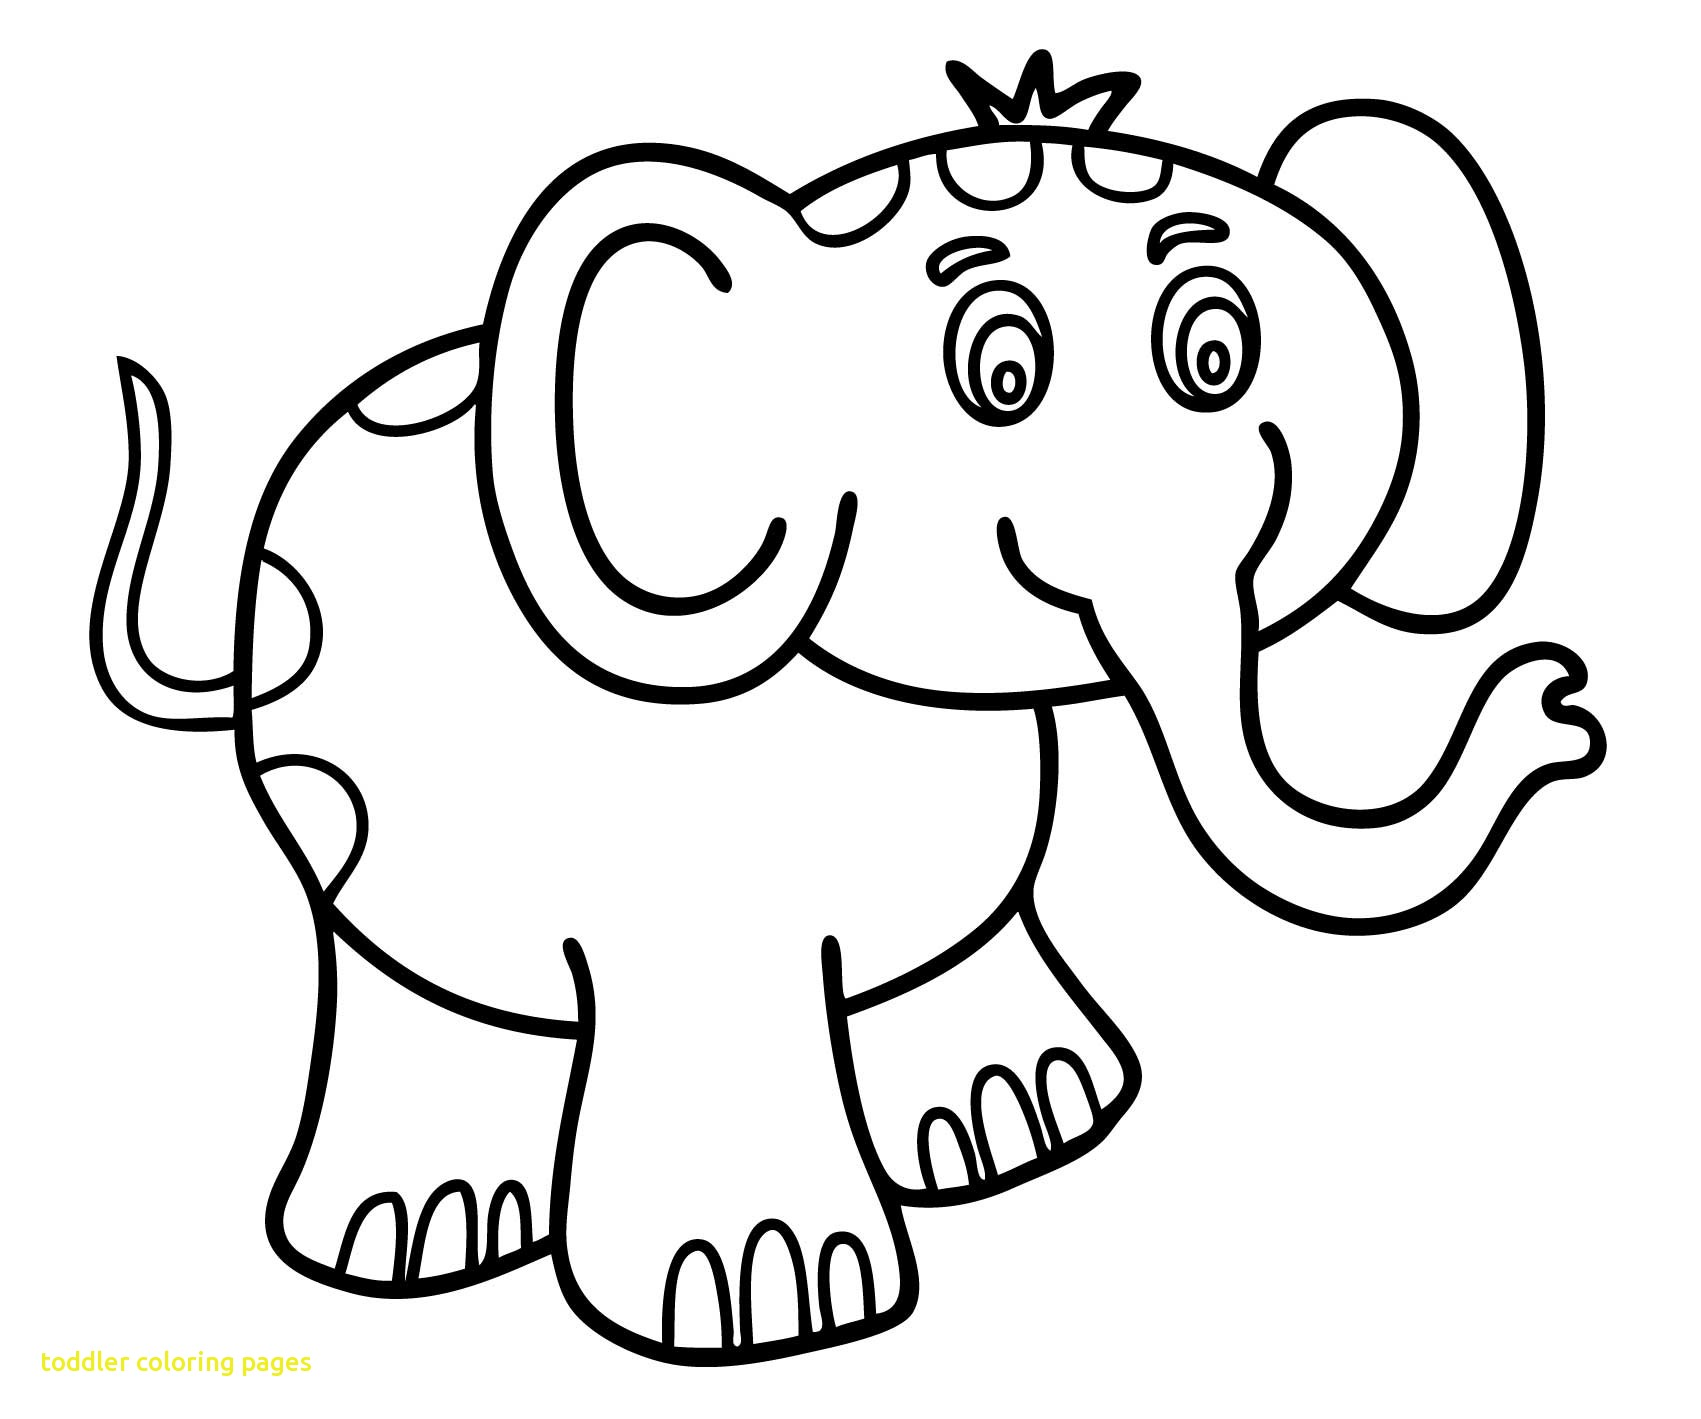 how to draw a woolly mammoth step by step how to draw a woolly mammoth step by step dinosaurs mammoth step draw step by to a woolly how